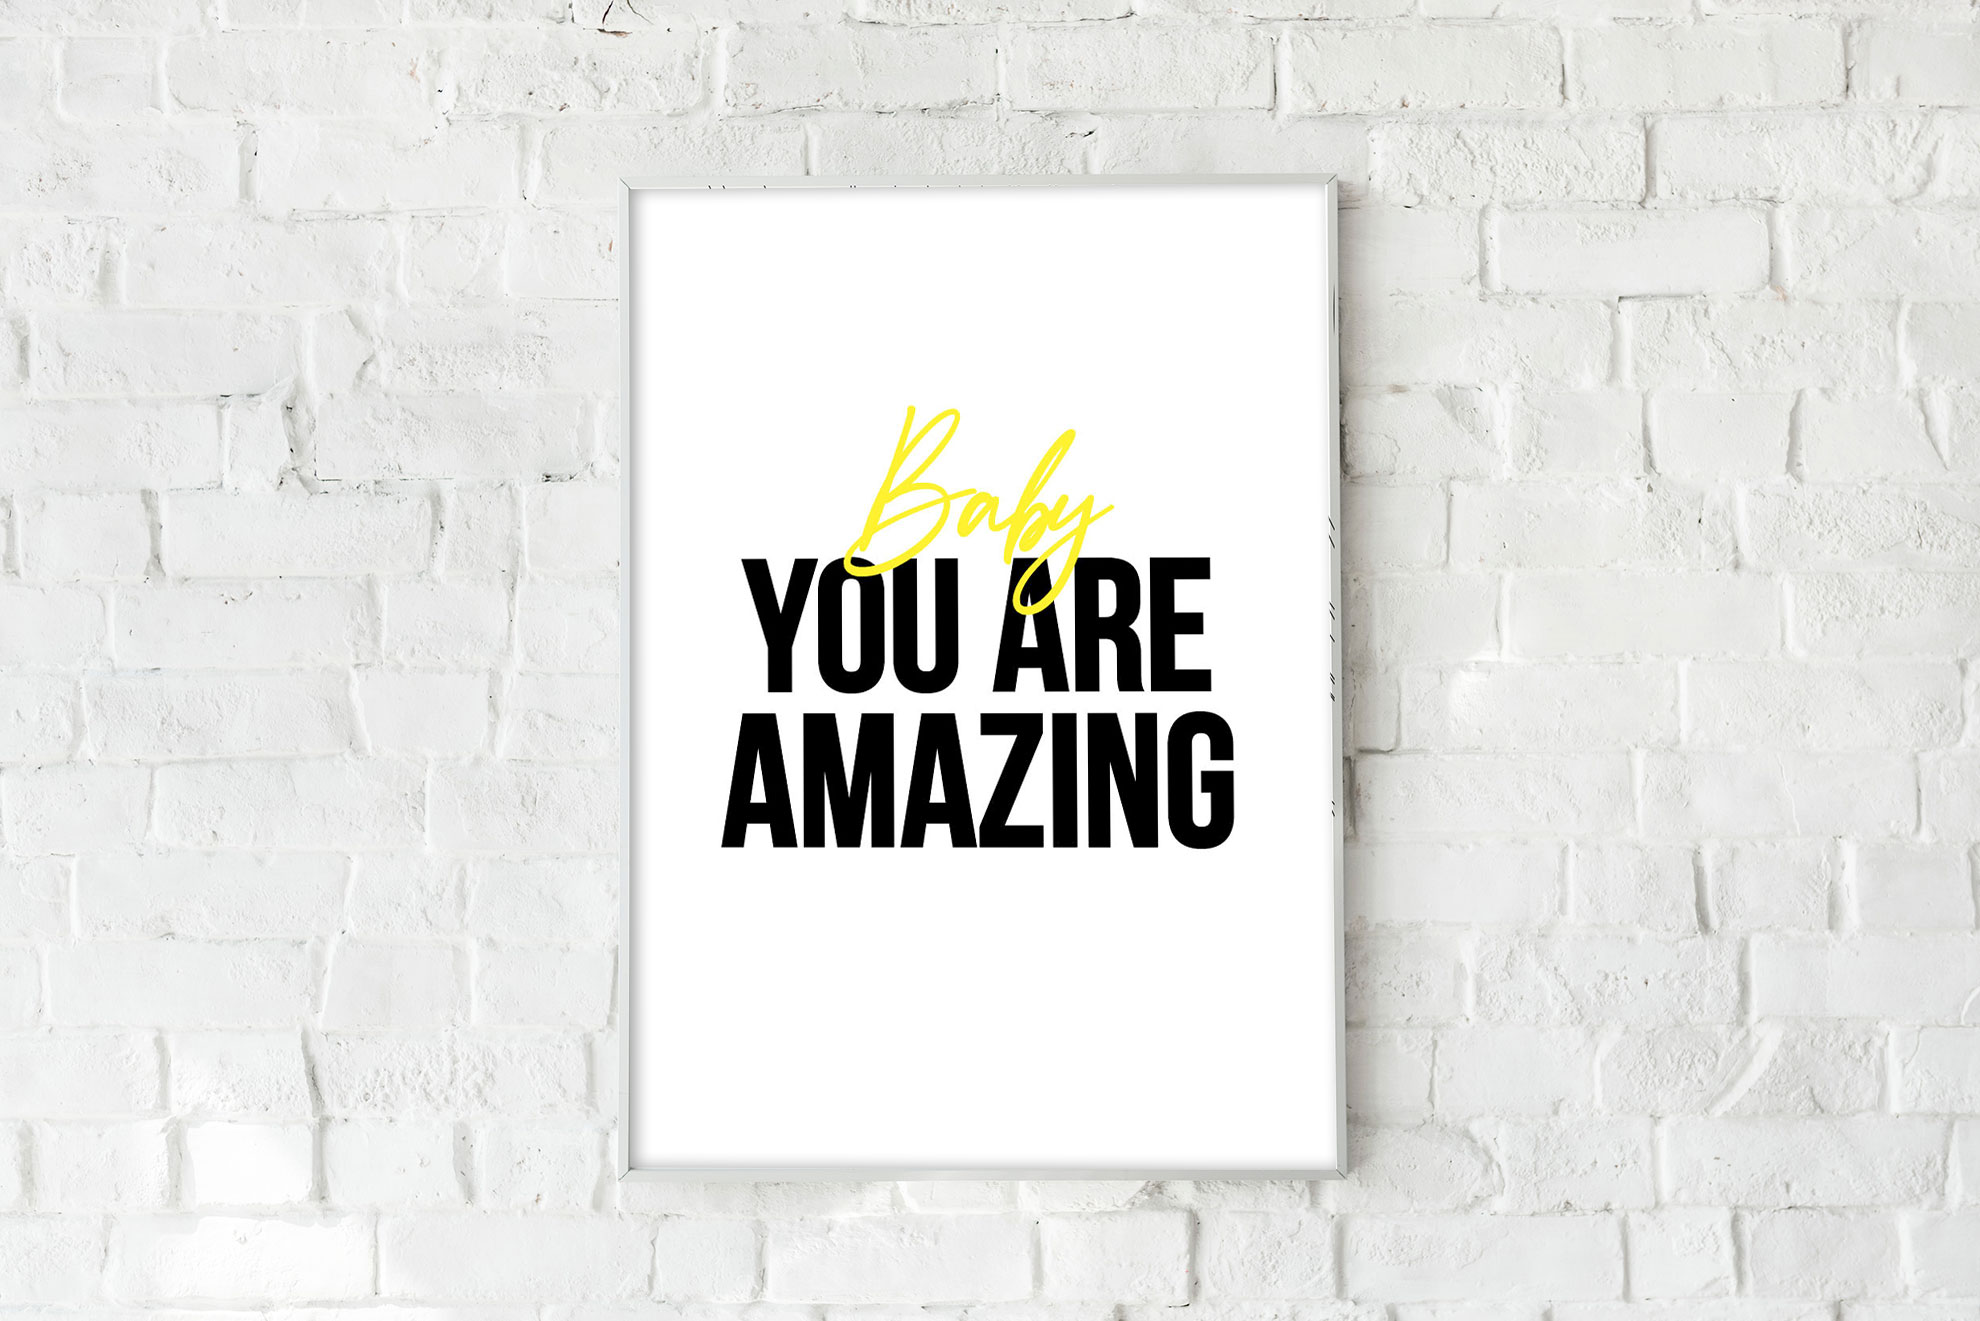 You Are Amazing - Yellow